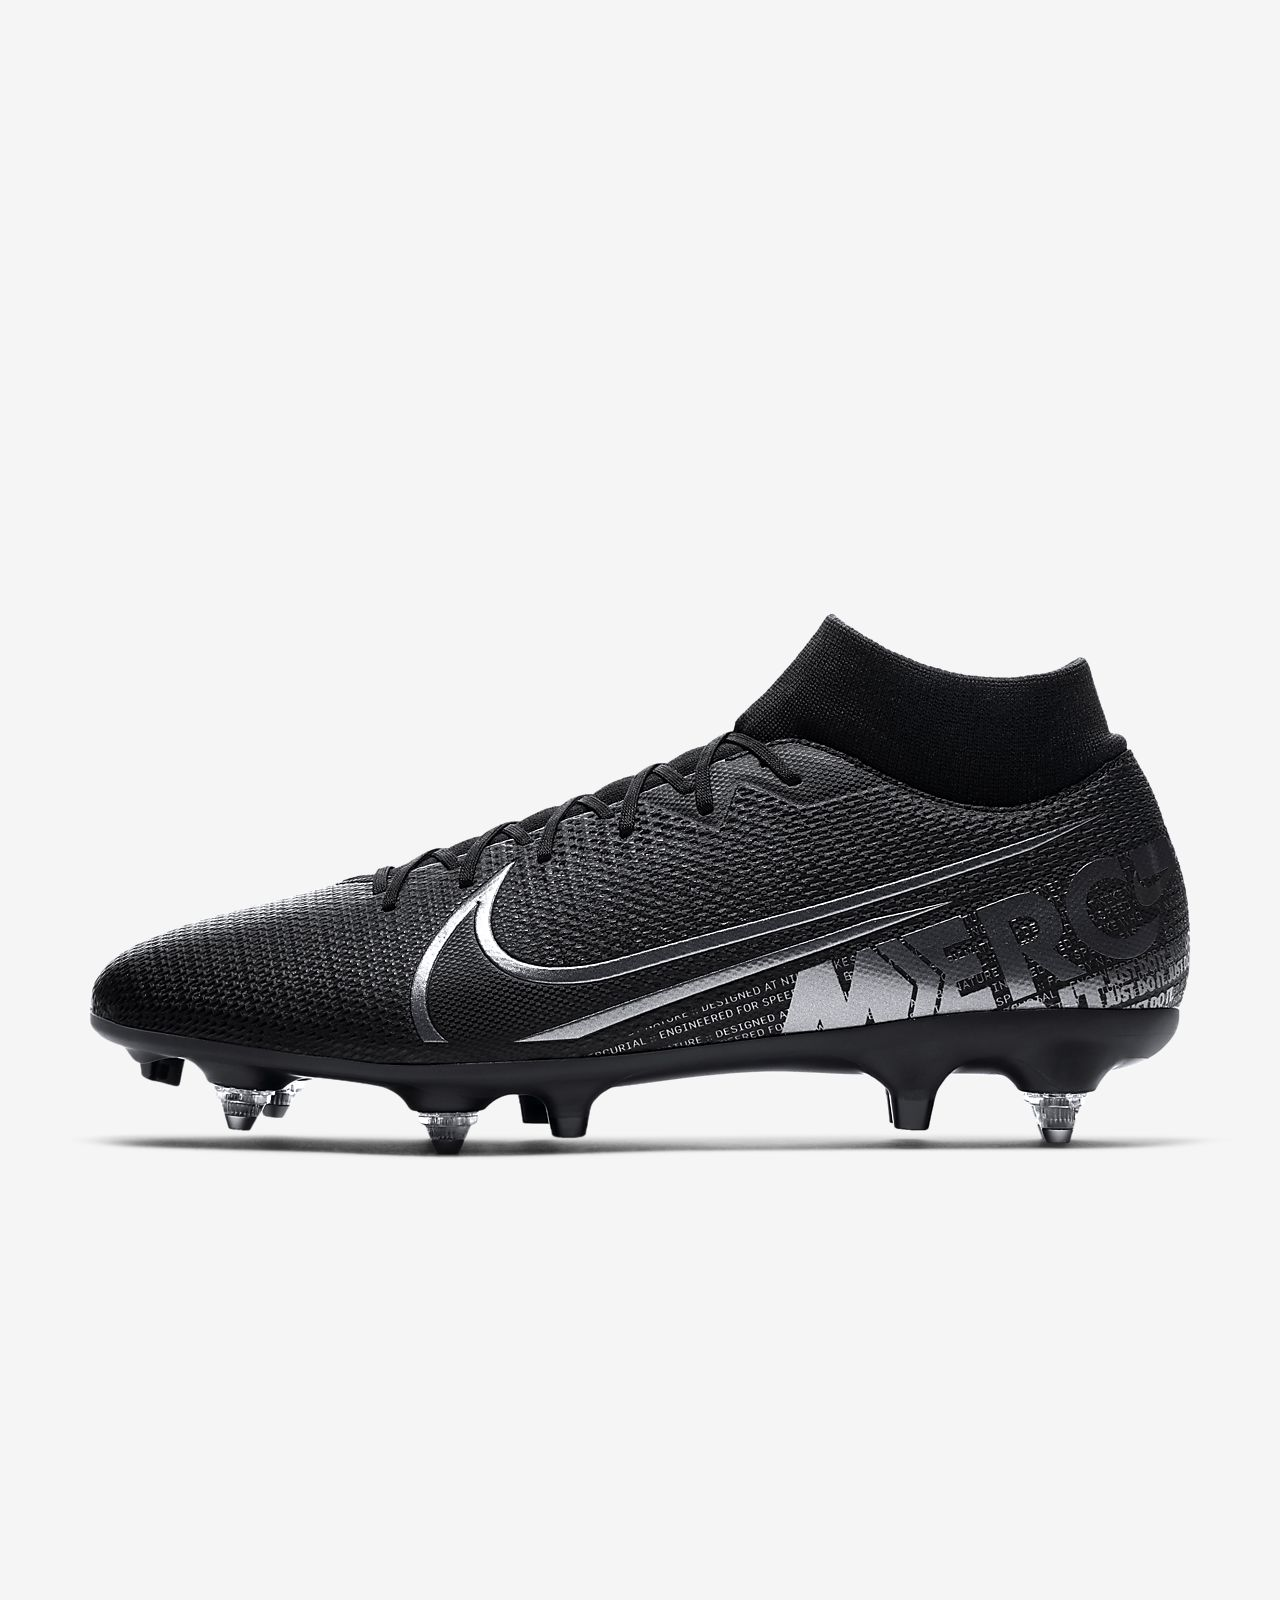 Chuteiras de futebol para terreno mole Nike Mercurial Superfly 7 Academy SG-PRO Anti-Clog Traction